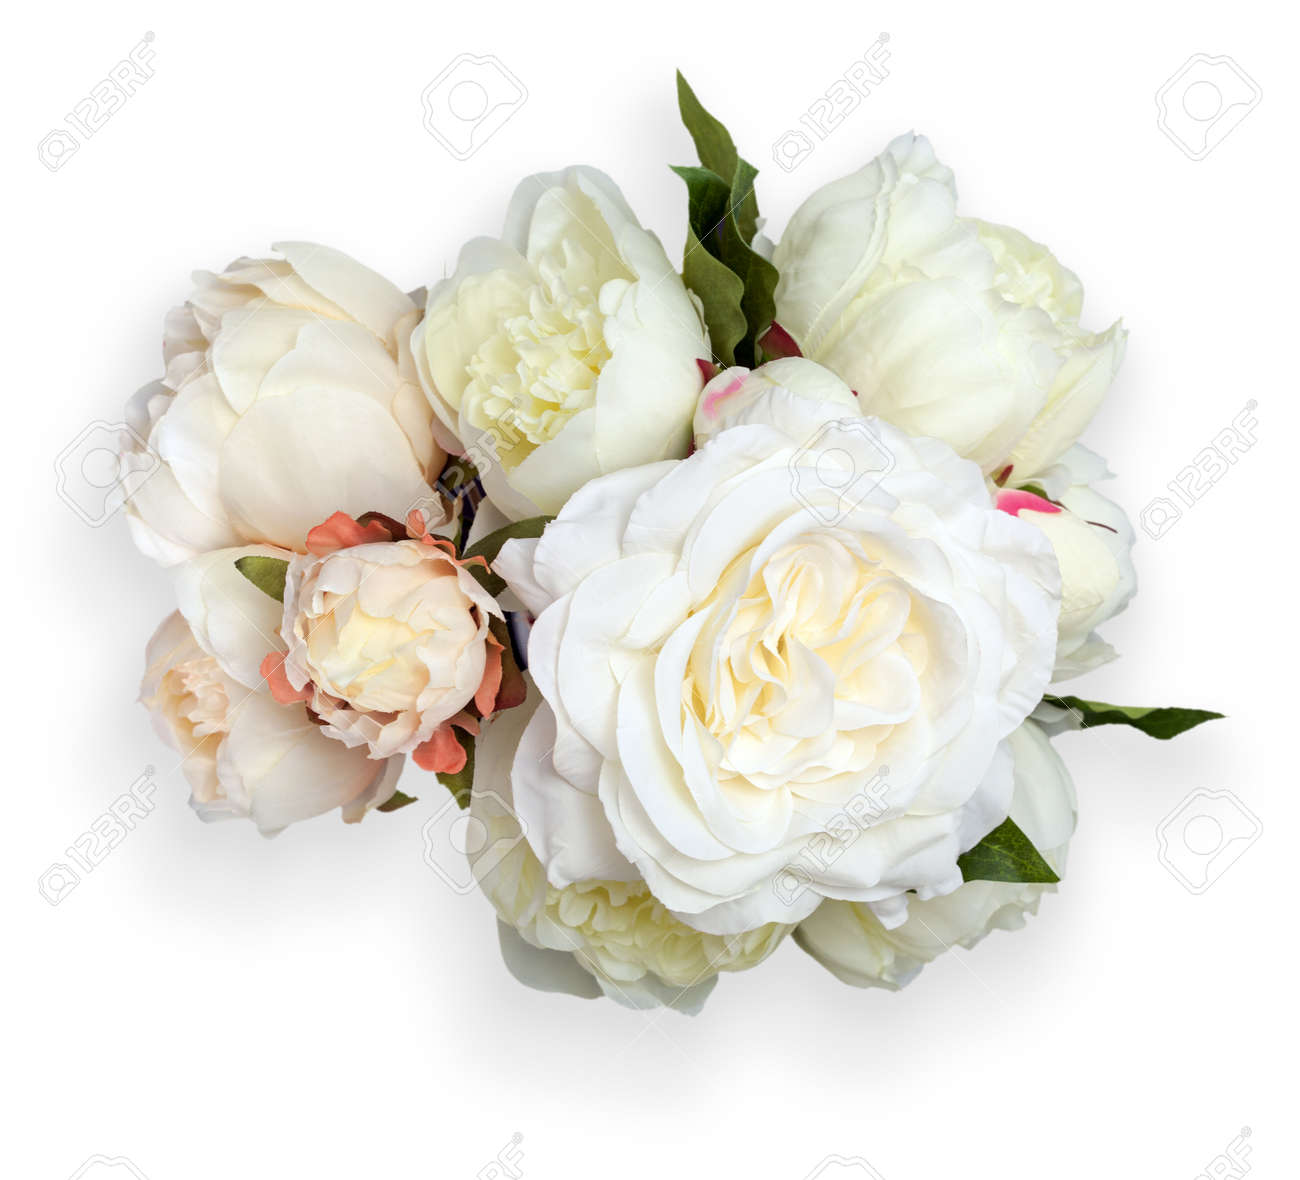 Top View Of White Peonies Bouquet Object Is Isolated On White